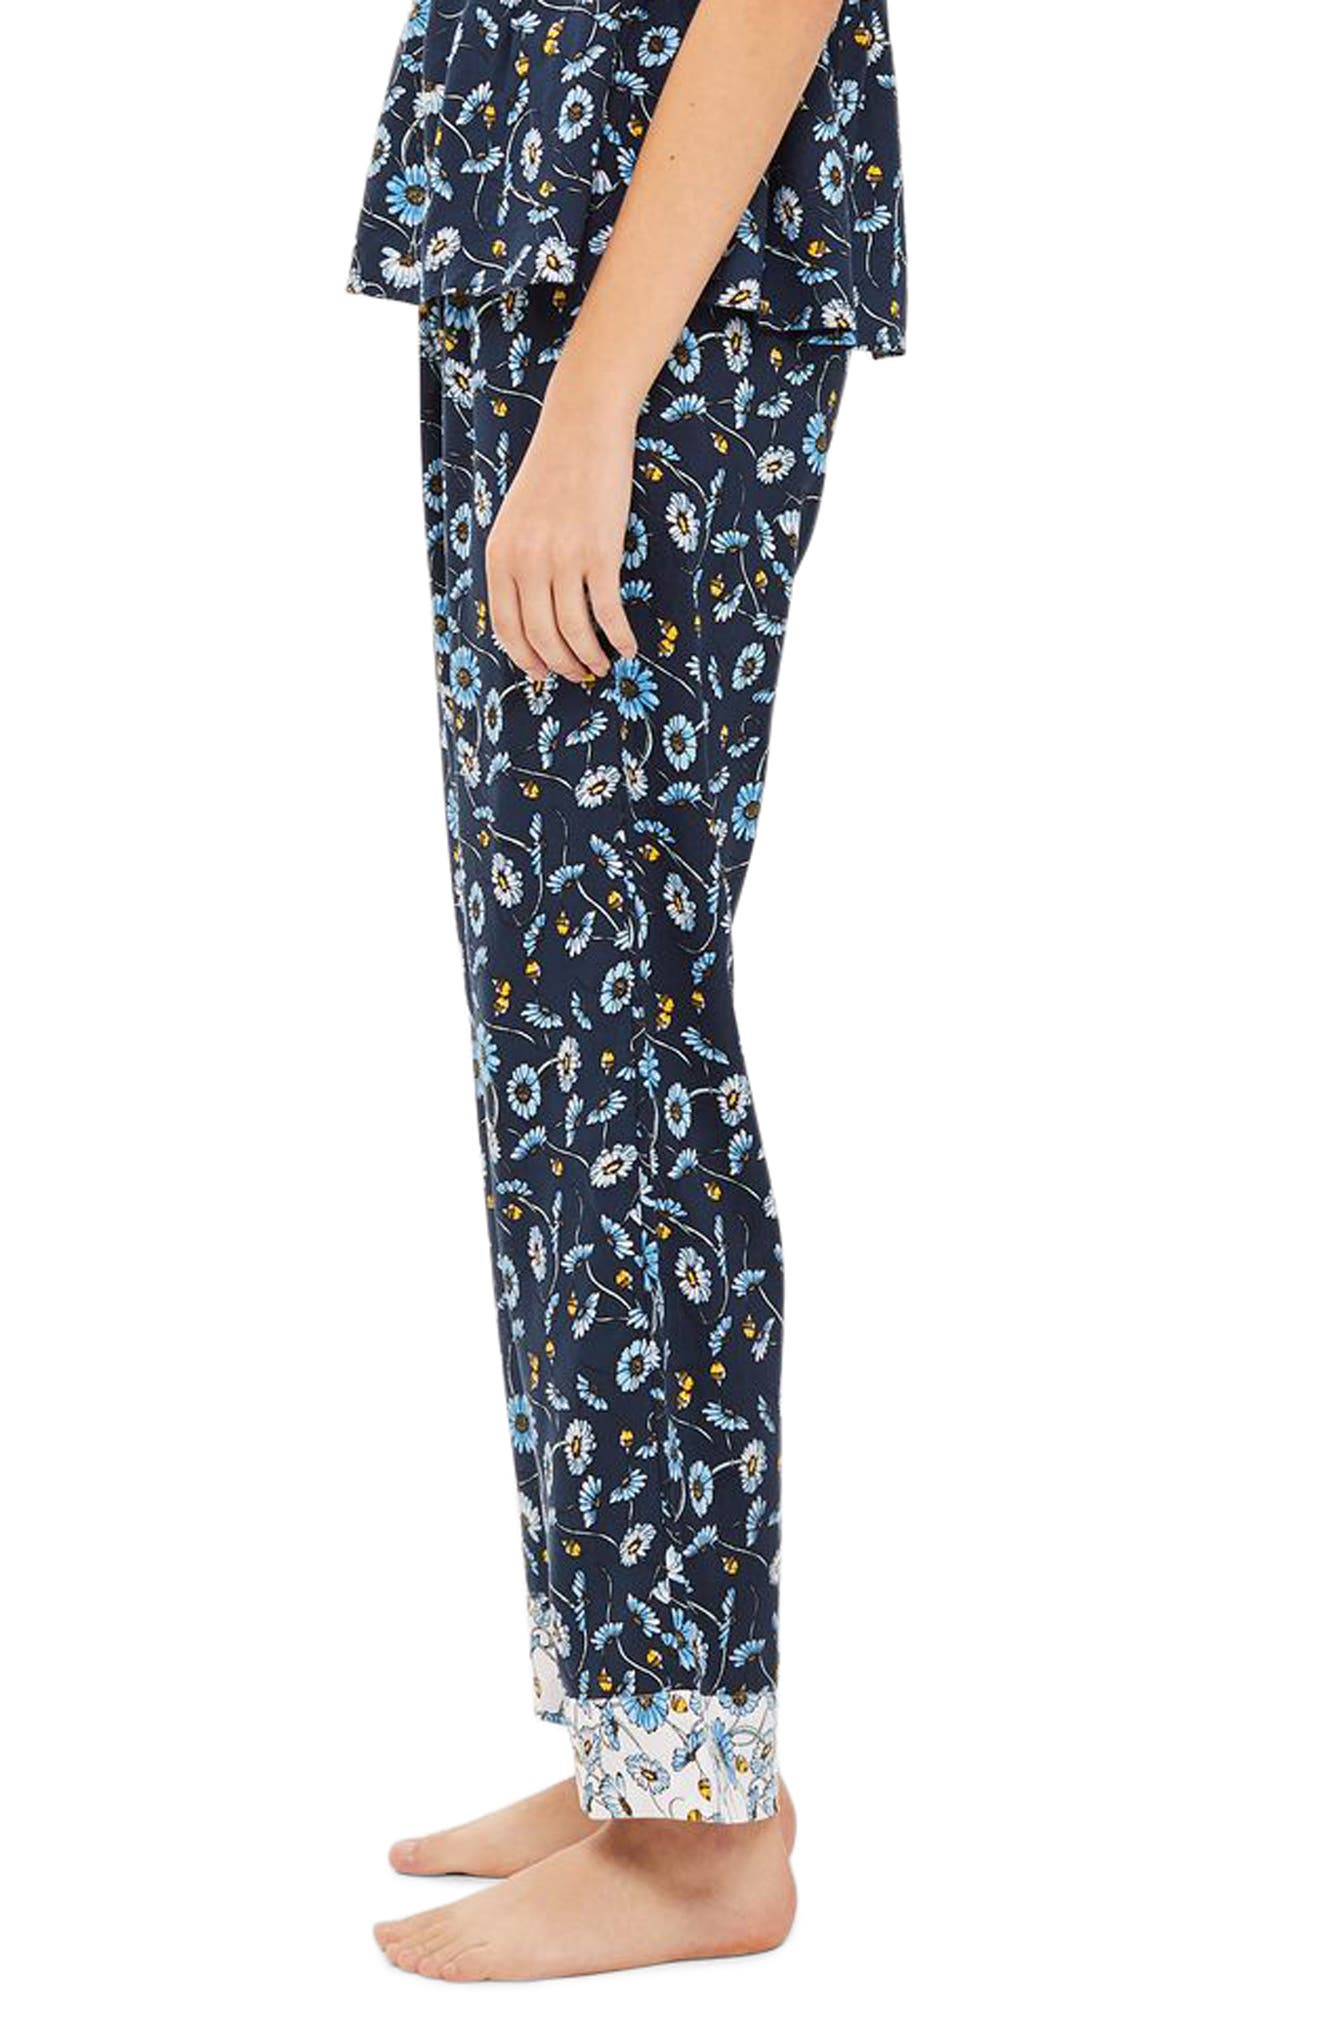 Floral Sleep Trouser Pajama Pants,                             Alternate thumbnail 3, color,                             NAVY MULTI